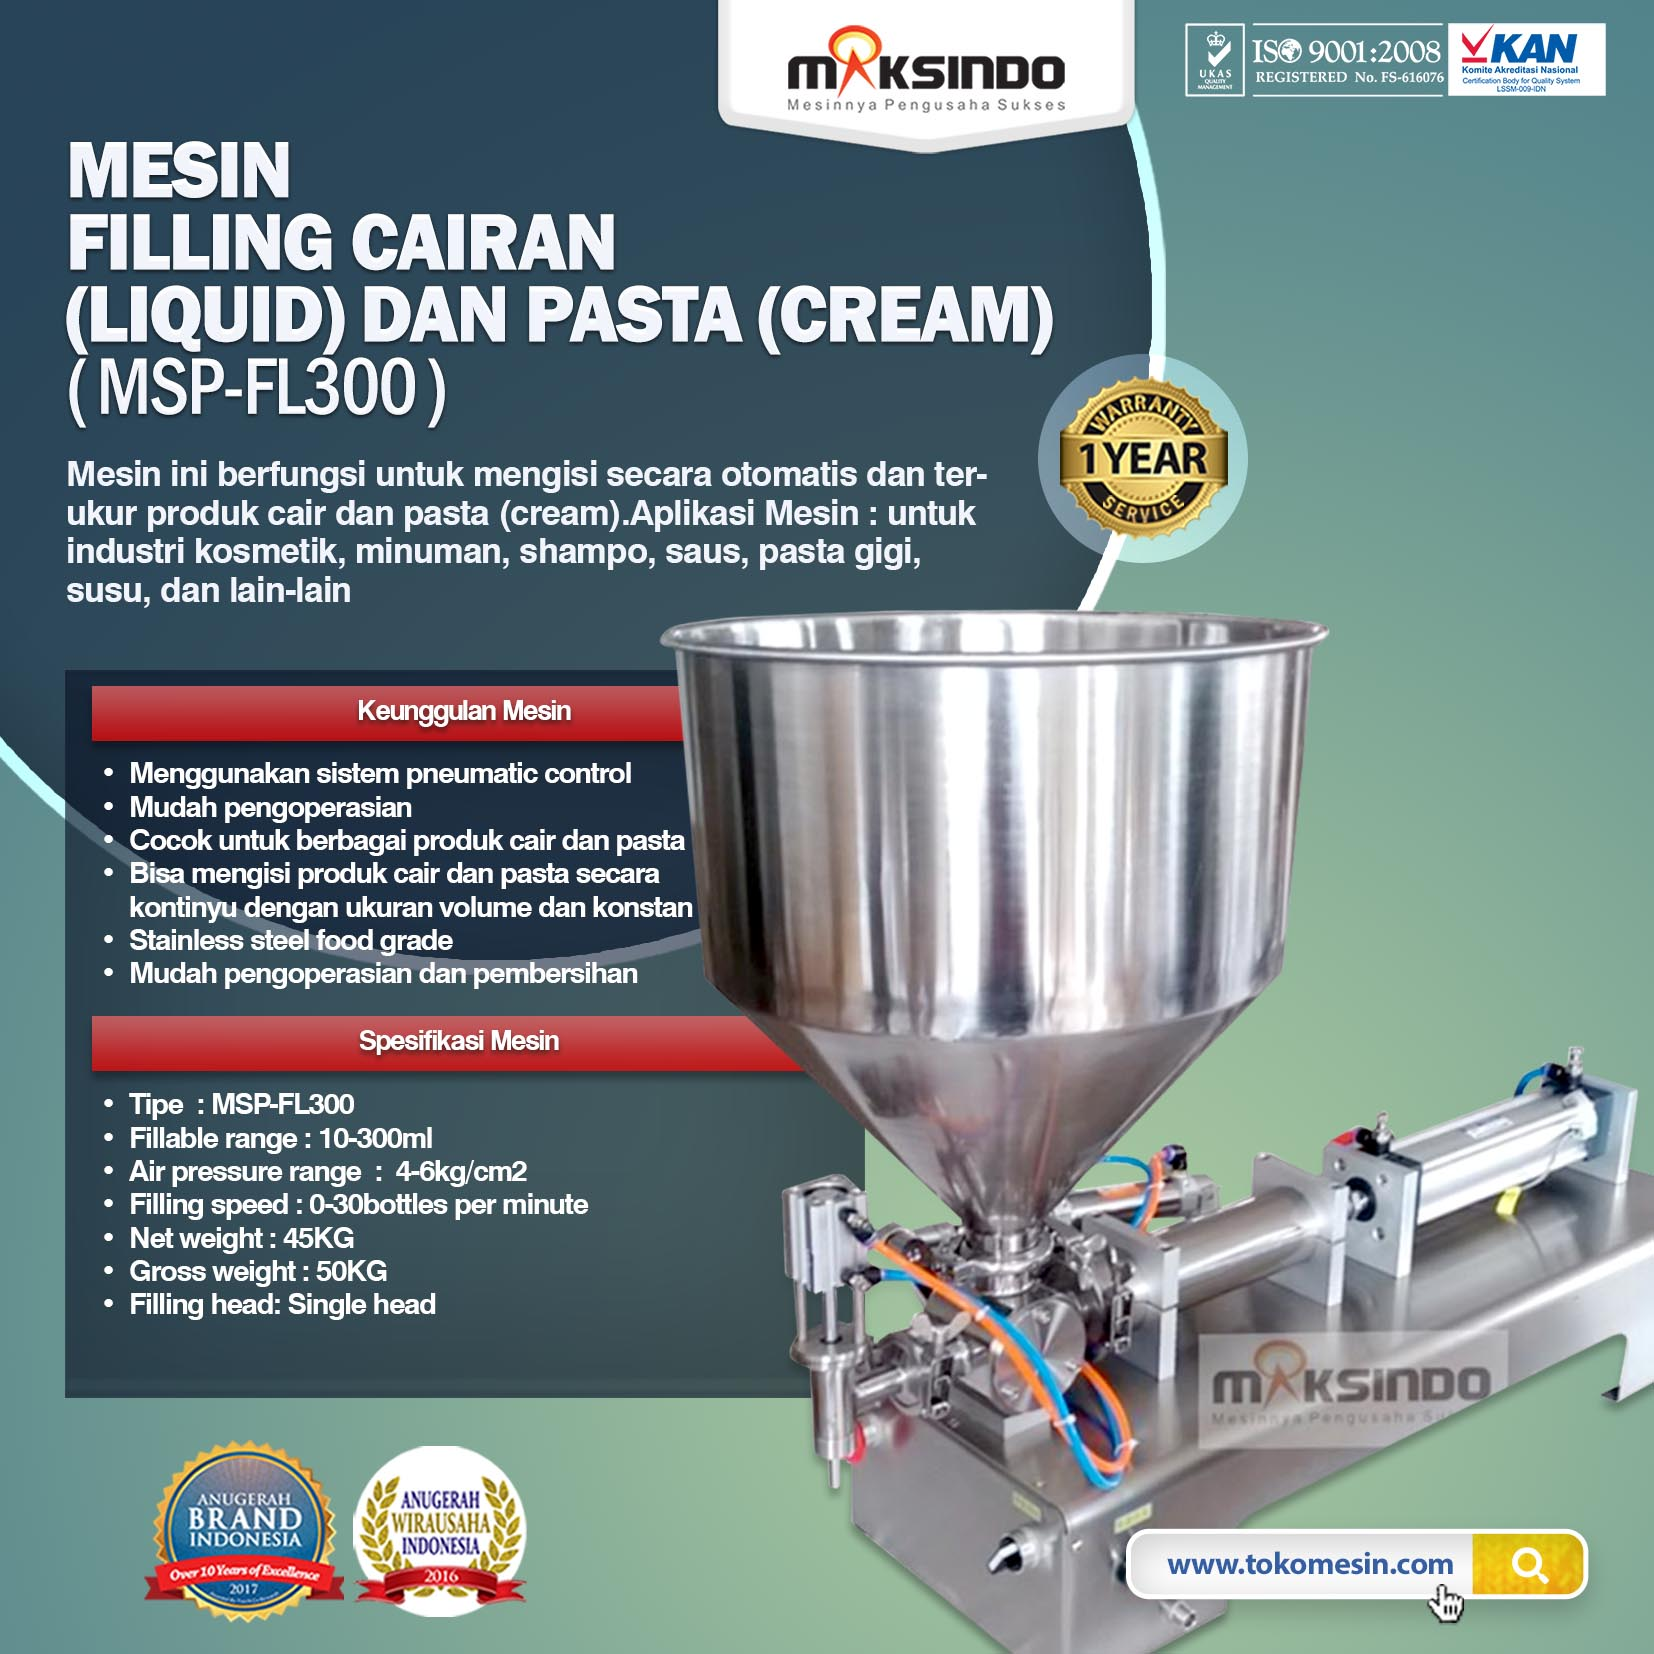 Mesin Filling Cairan Liquid Dan Pasta Cream MSP FL300